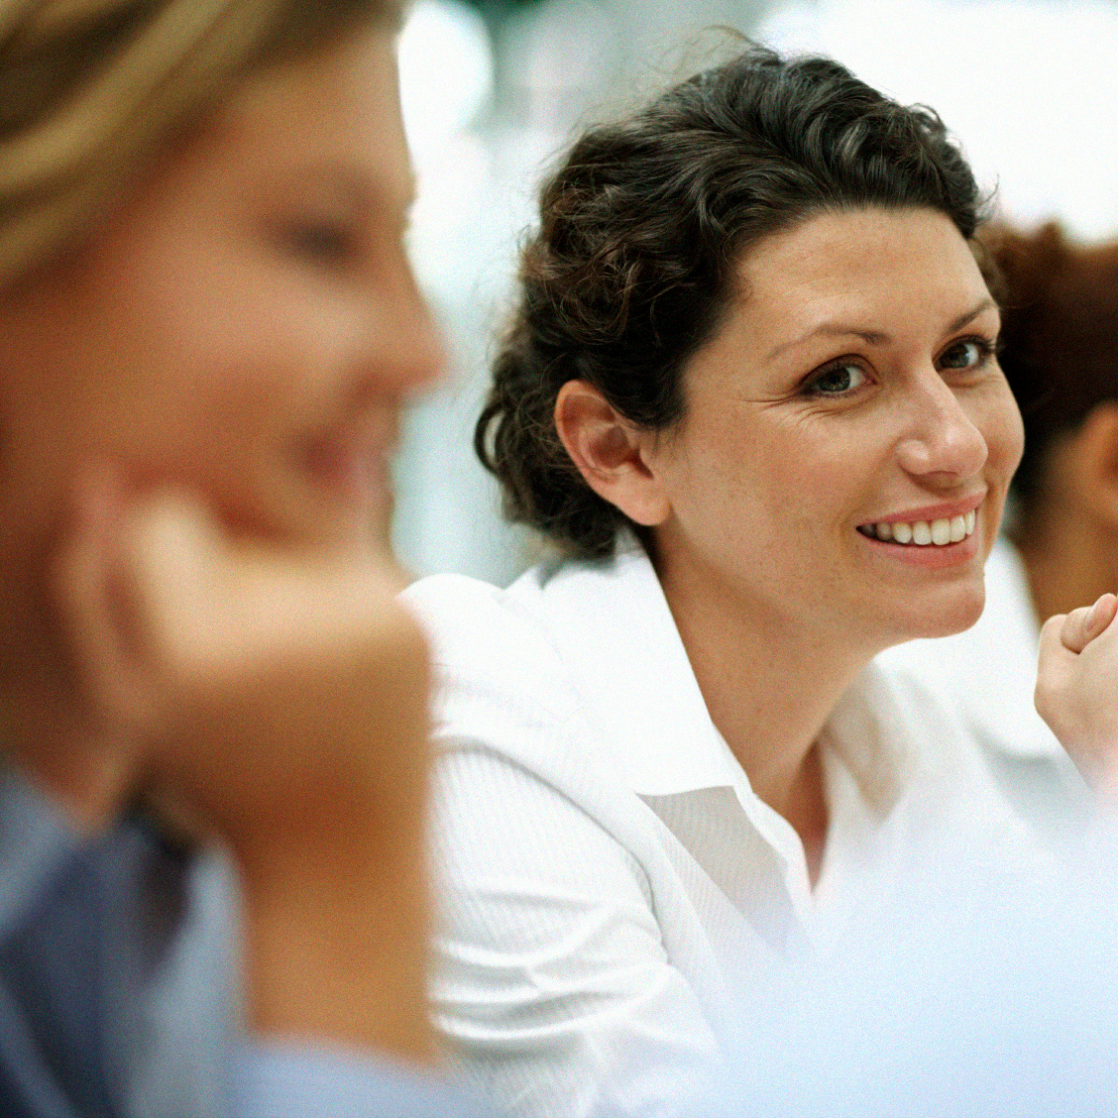 a woman in a white shirt at a business meeting with colleagues